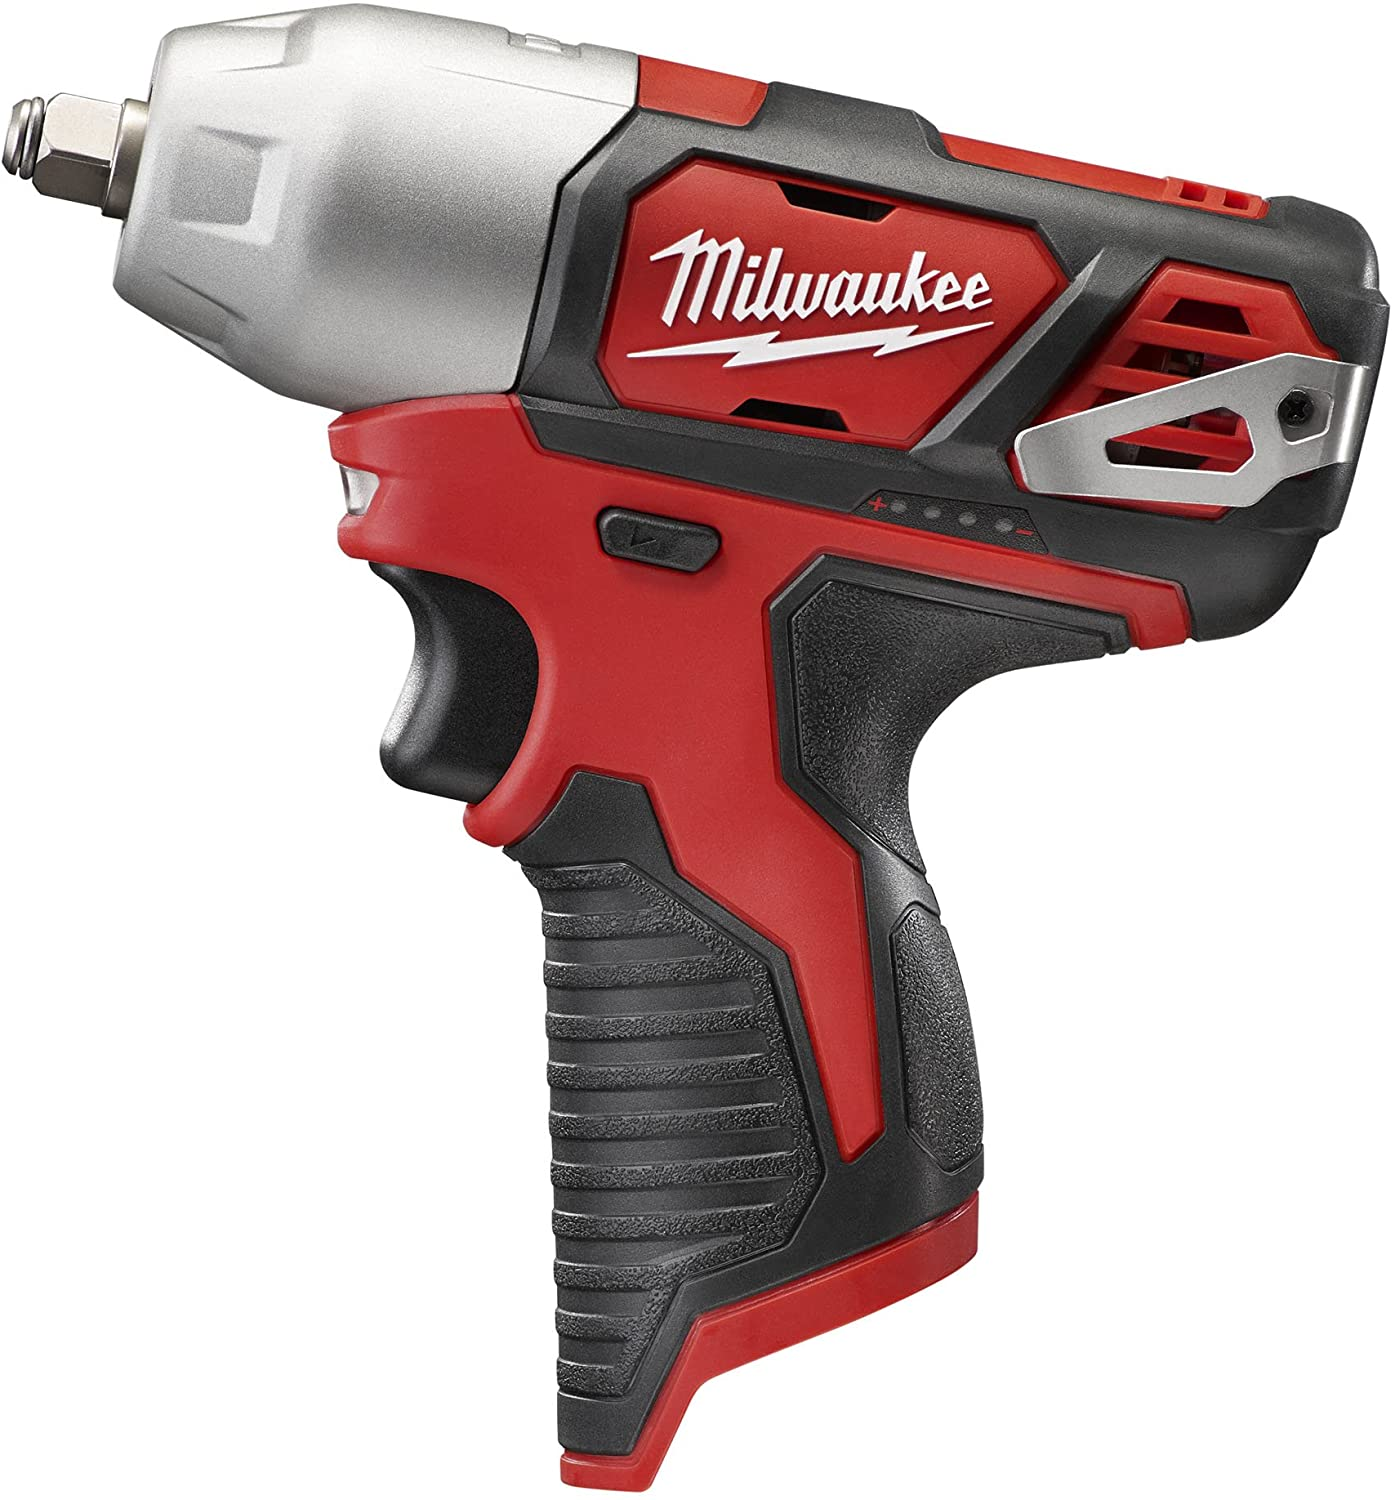 Milwaukee 2463-20 M12 3 8 Impact Wrench – Bare